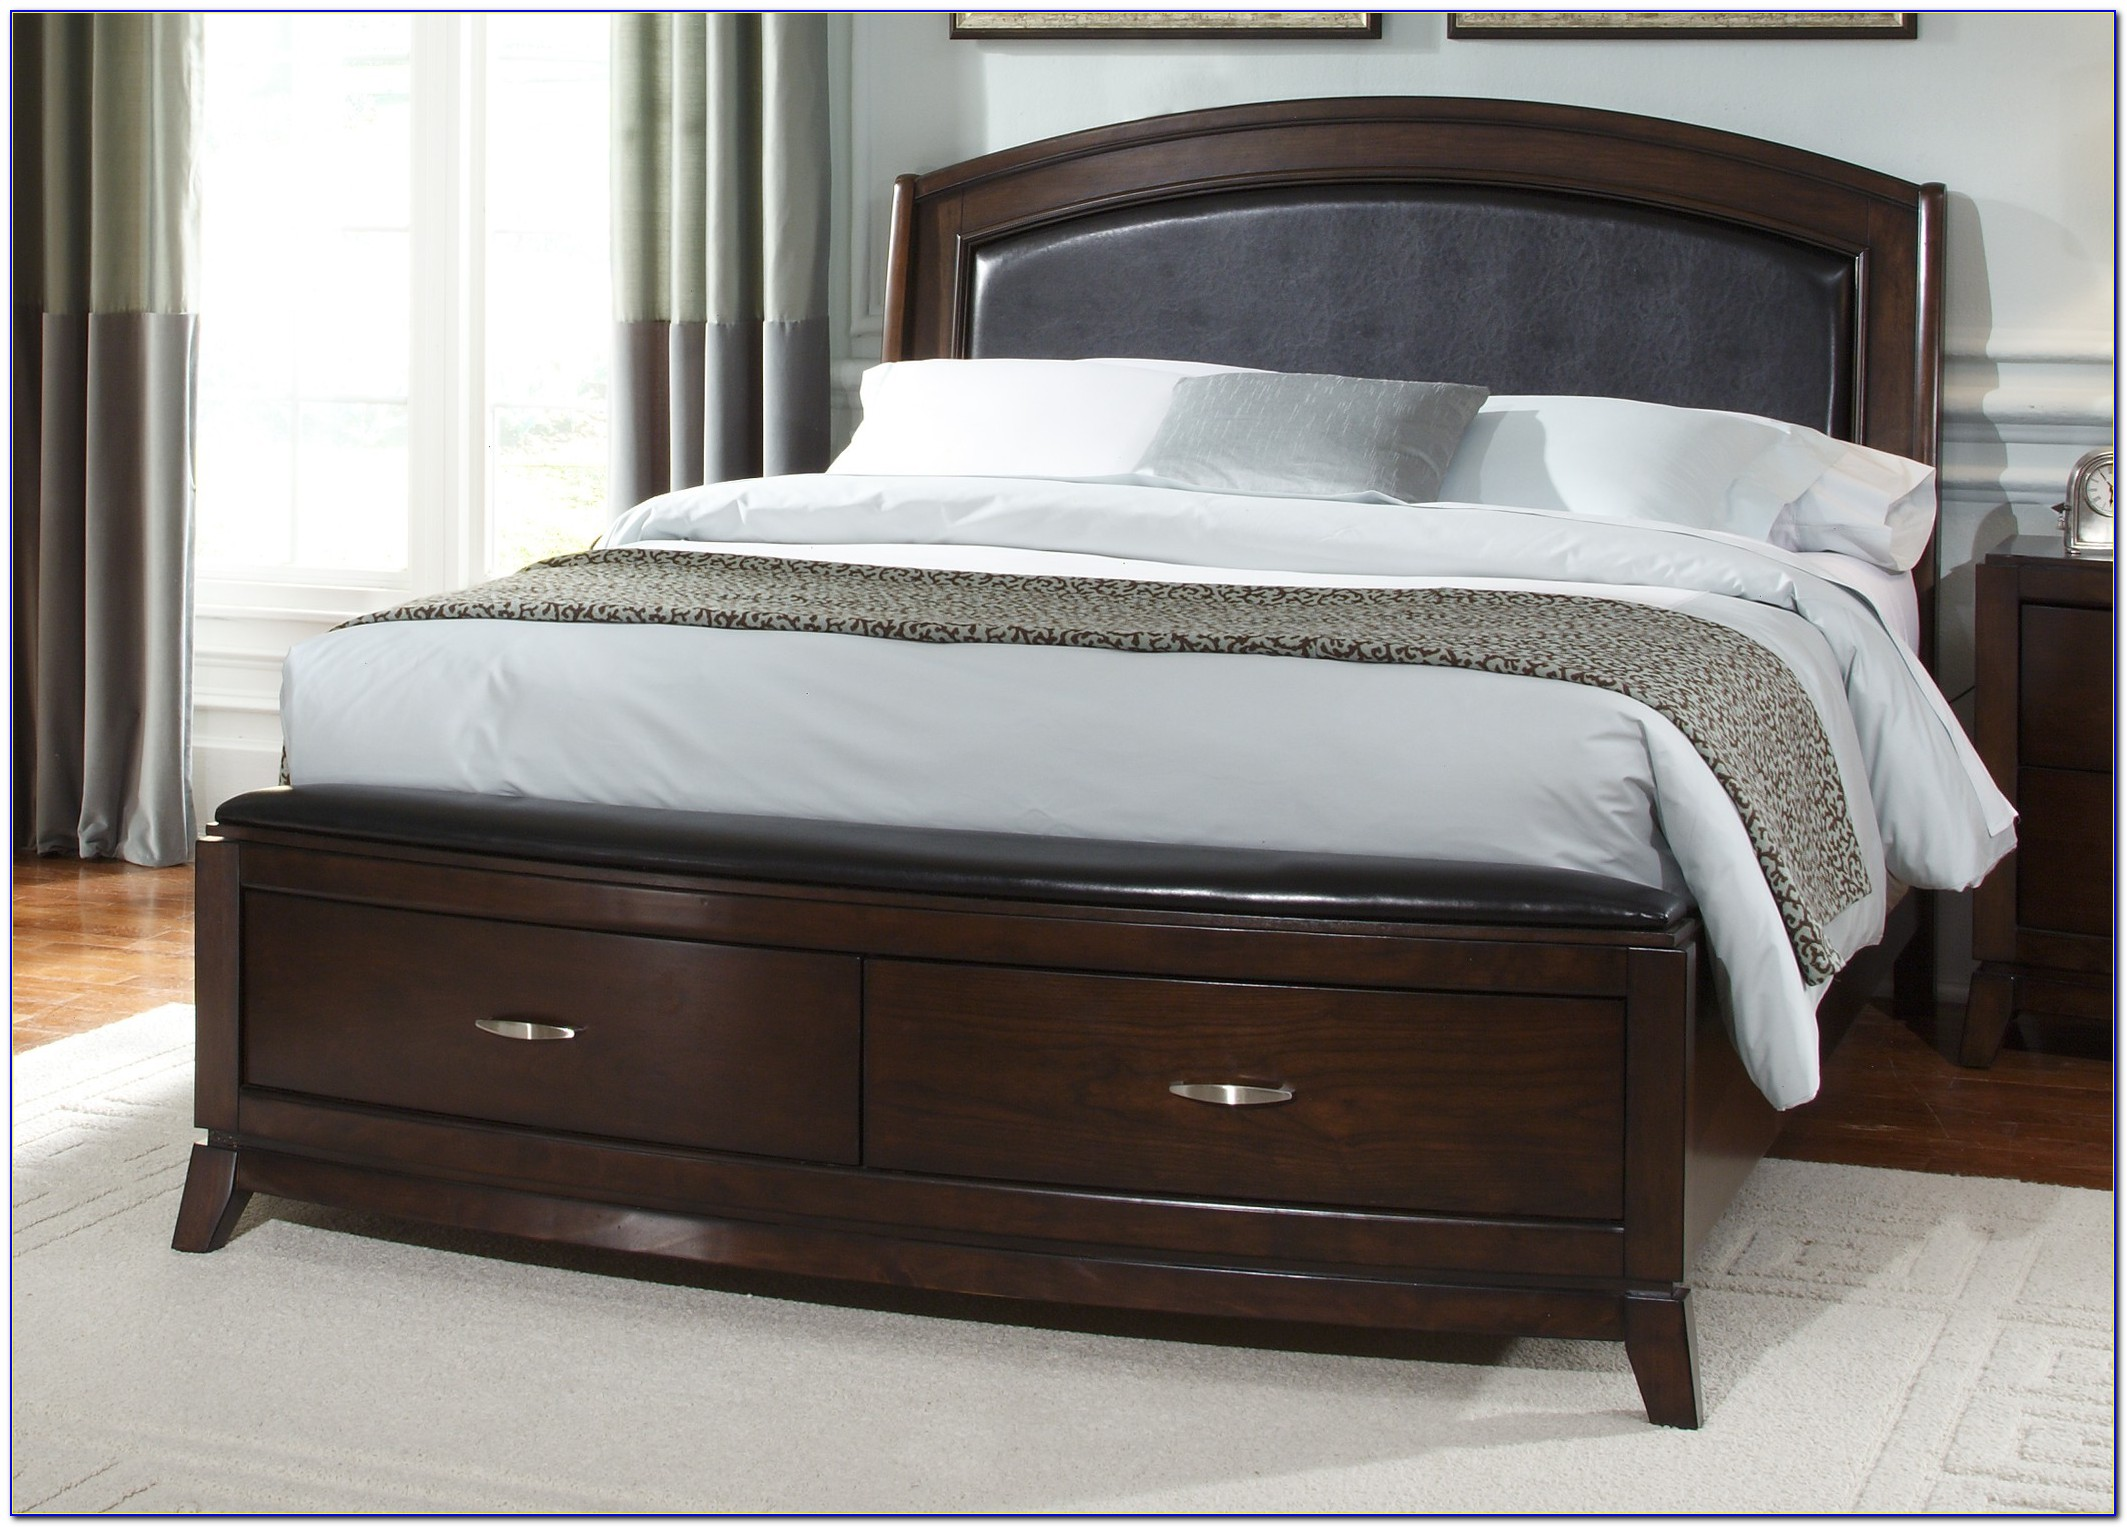 Bed Frame And Headboard Set King